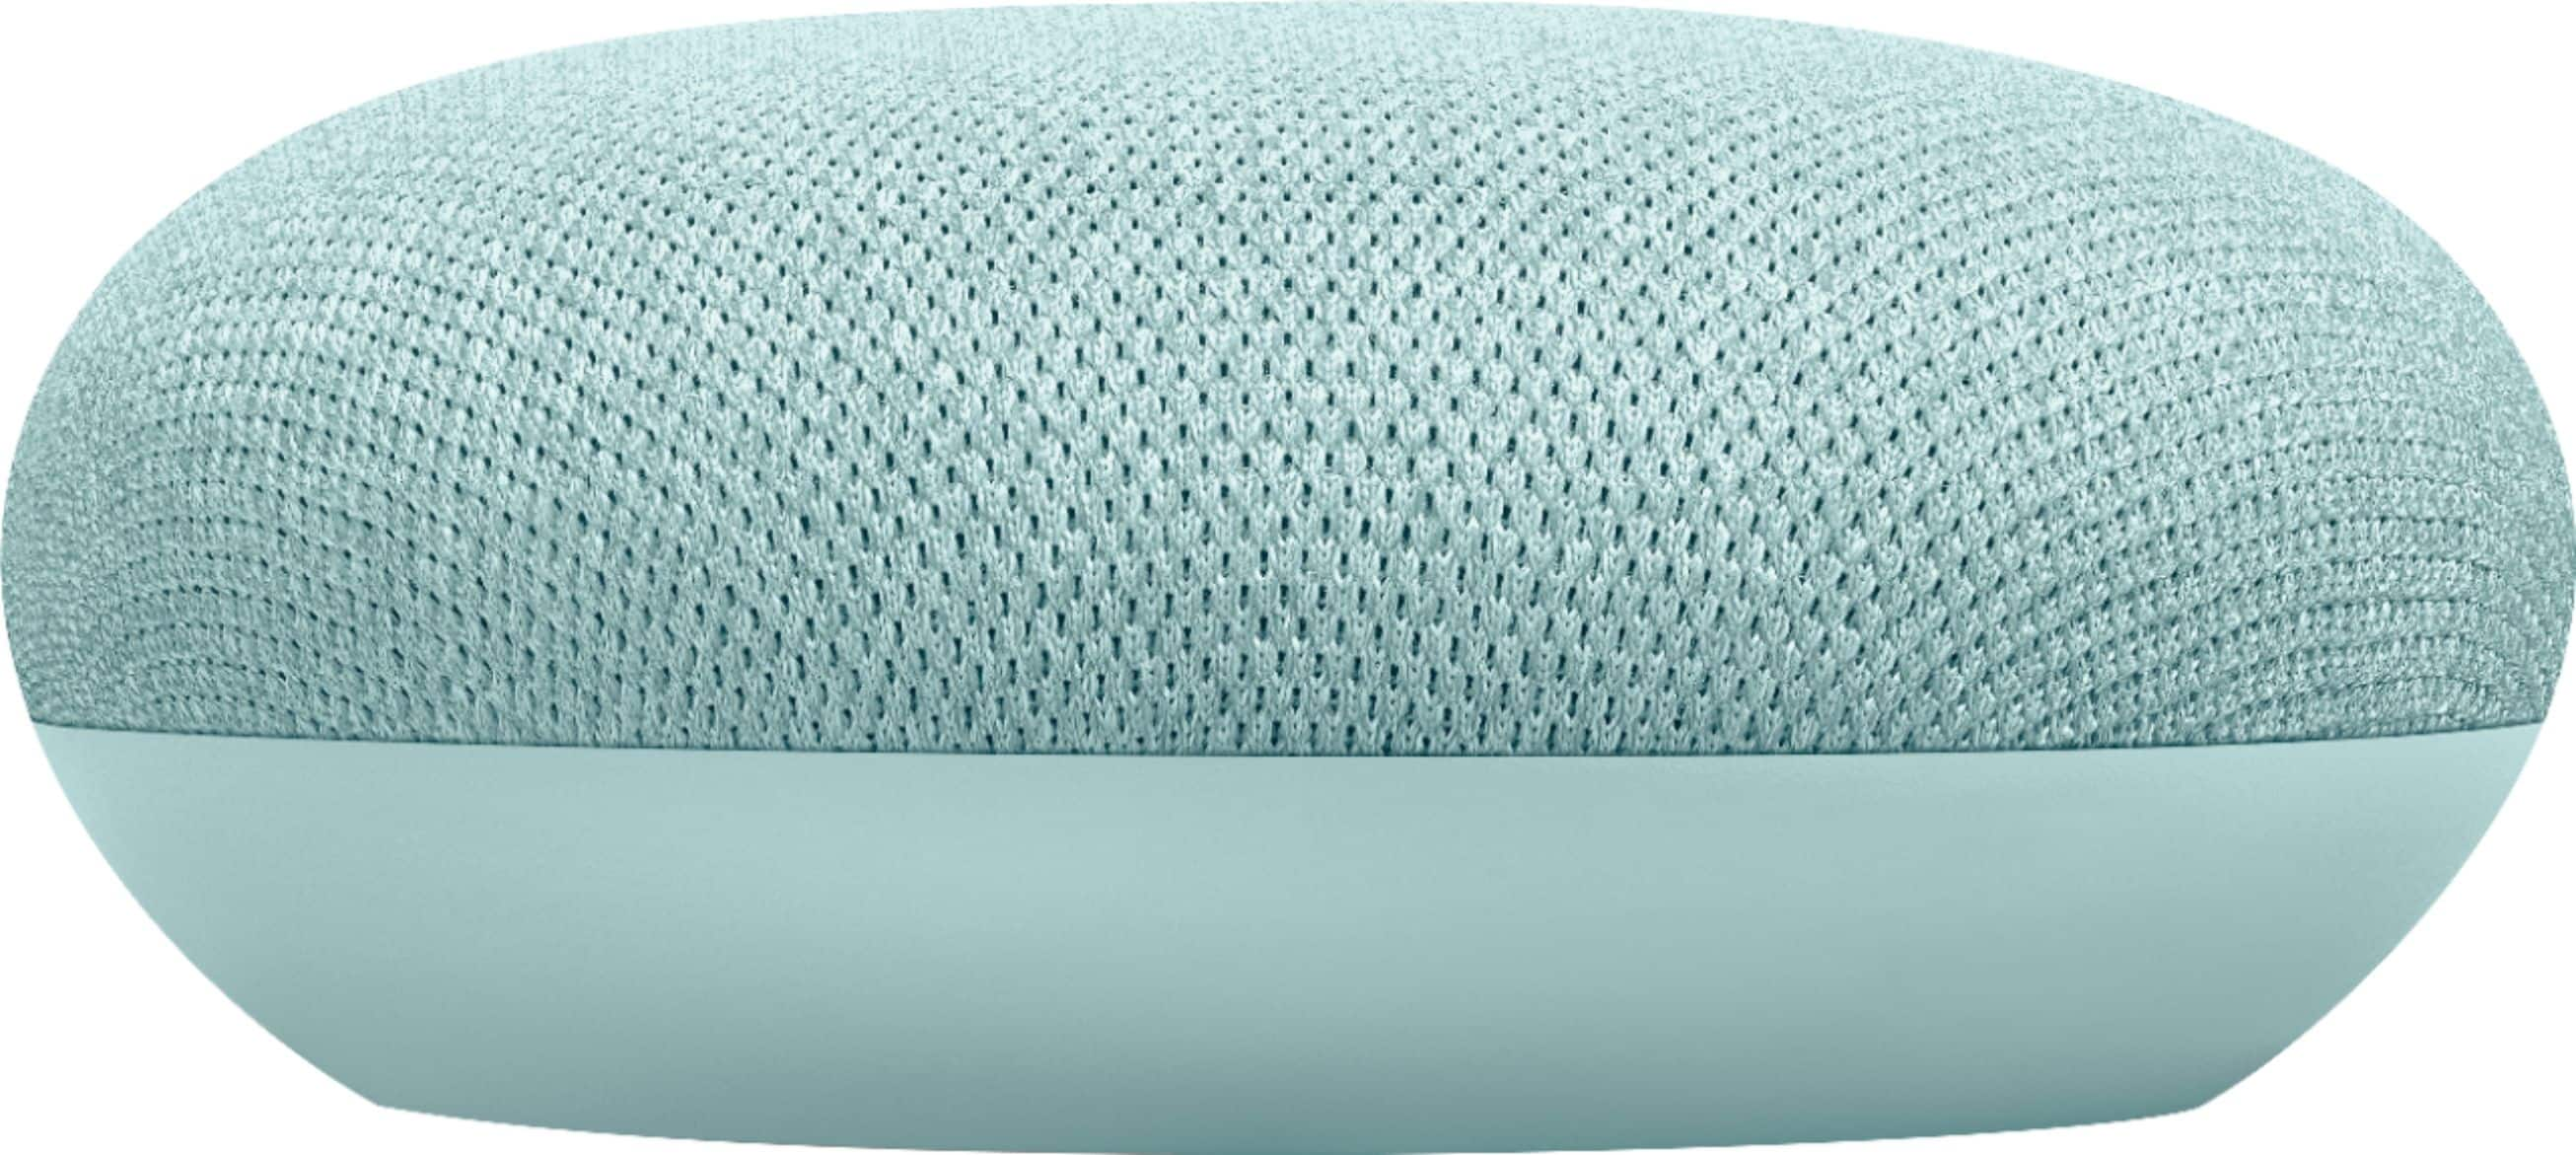 Google Home Mini $25.00